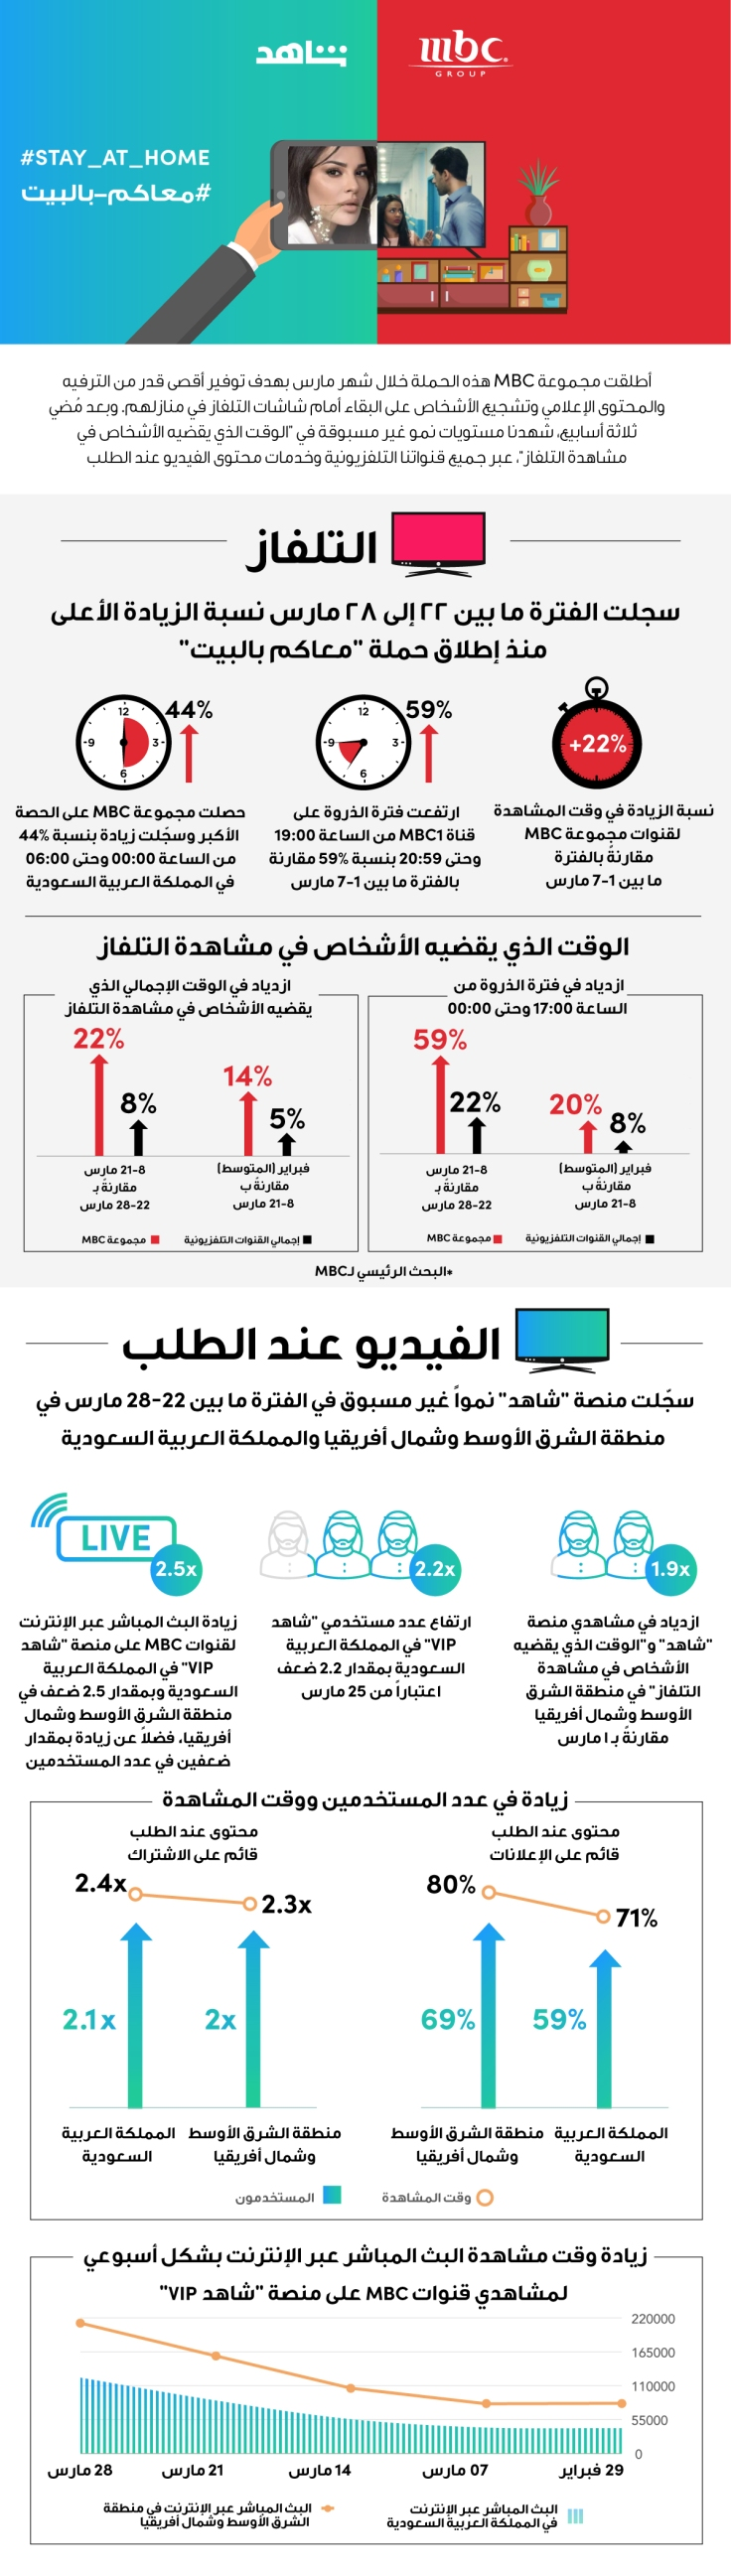 infographic-mbcgroup-AR.JPG